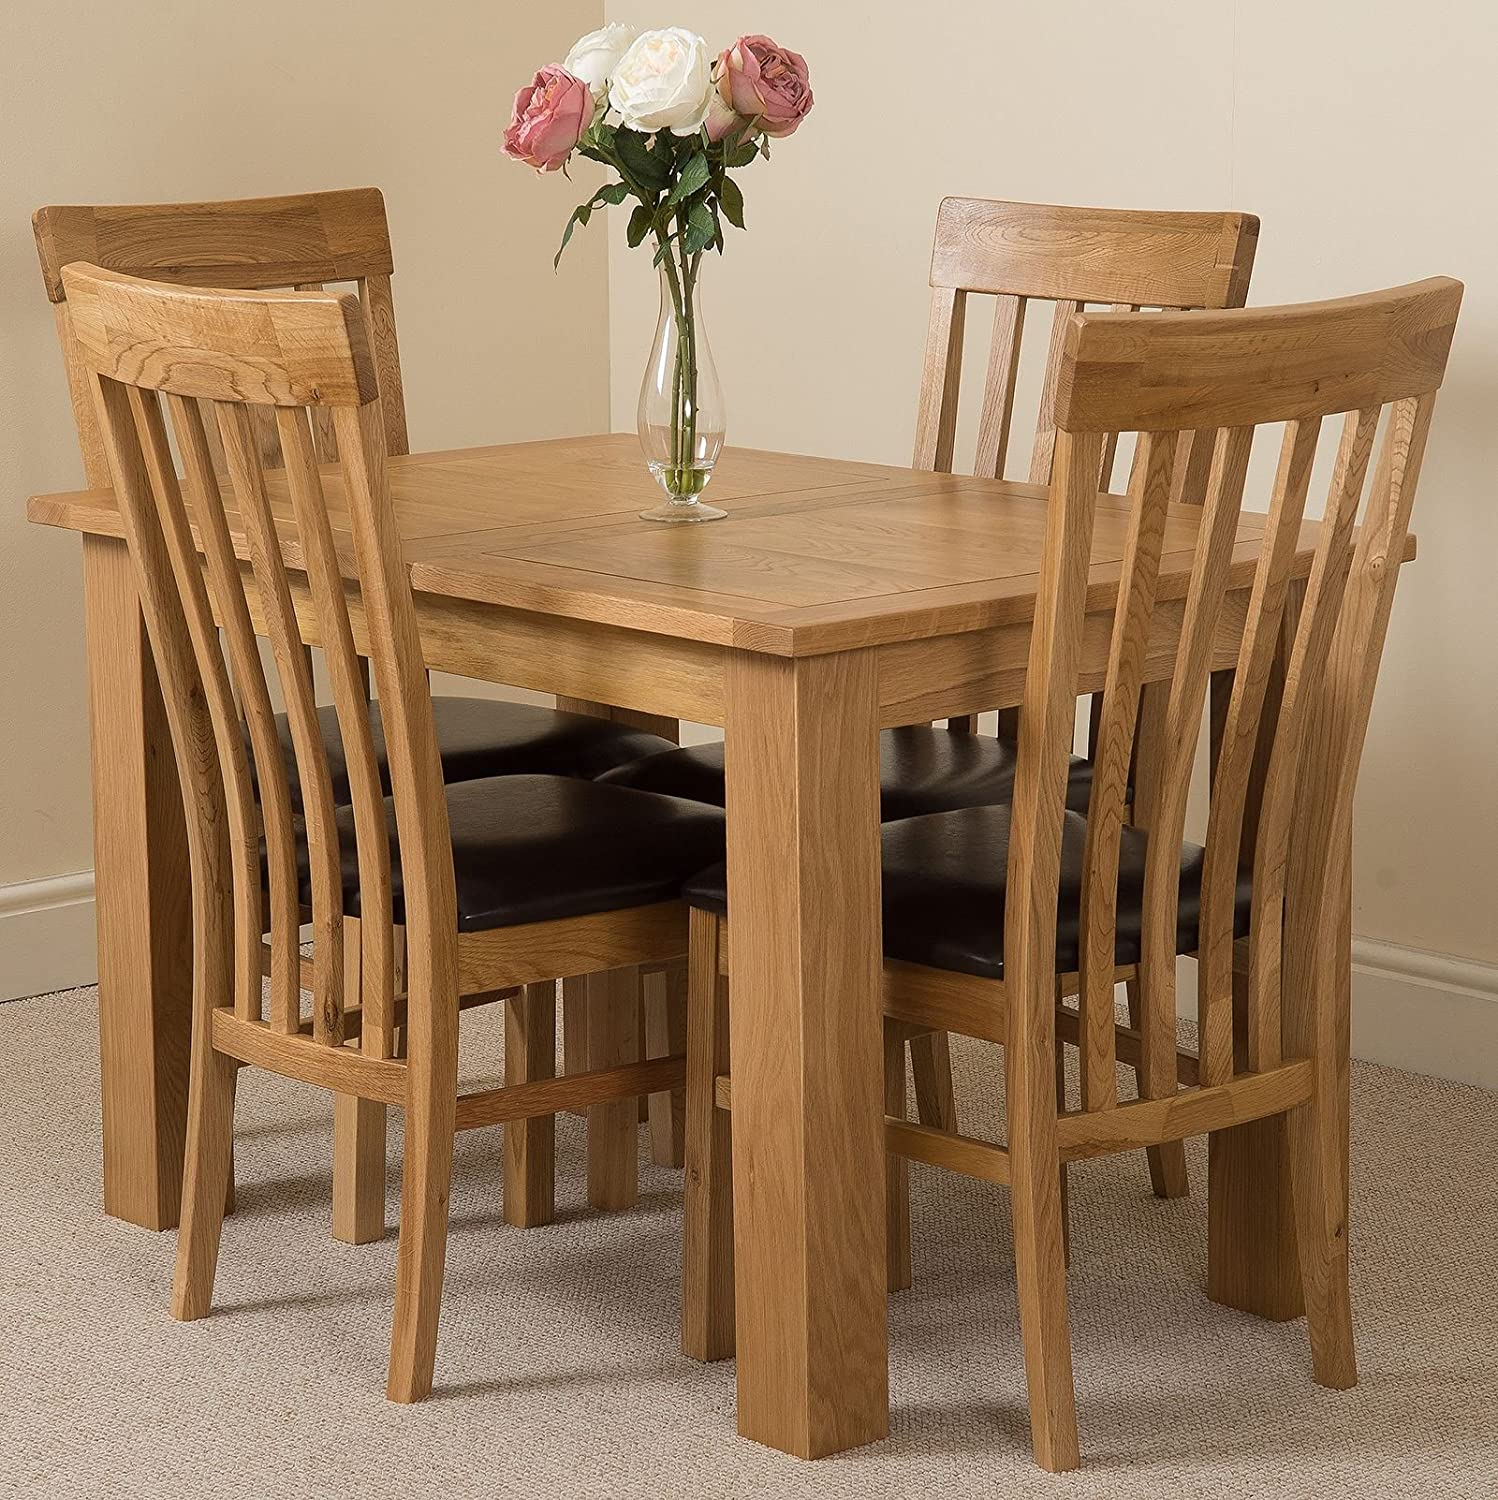 Hampton 120cm 160cm Oak Extending Dining Table And 4 Chairs Dining Set With Harvard Slat Back Chairs Amazon Co Uk Kitchen Home